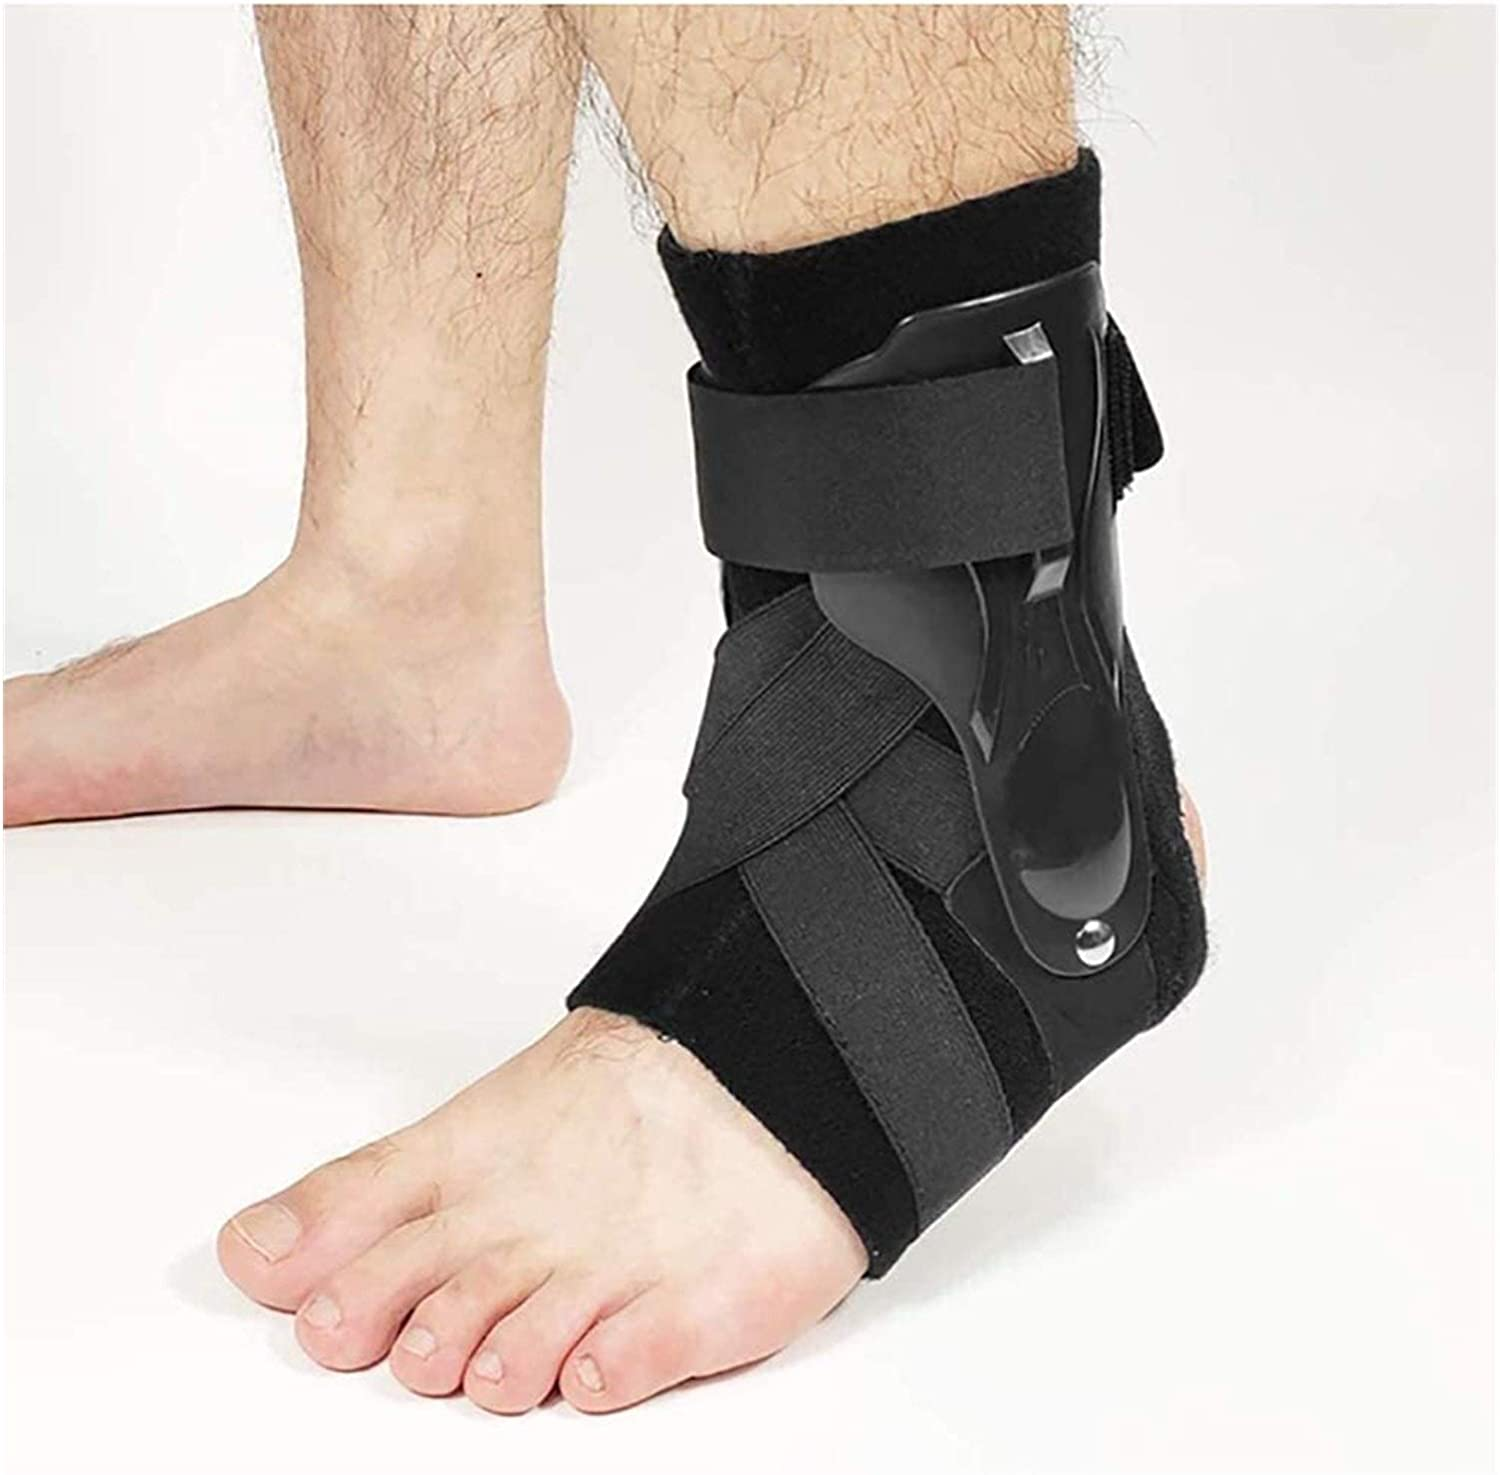 Adjustable Wholesale Ankle Foot Orthosis Easy 1 year warranty Relieve to Pain Plantar for